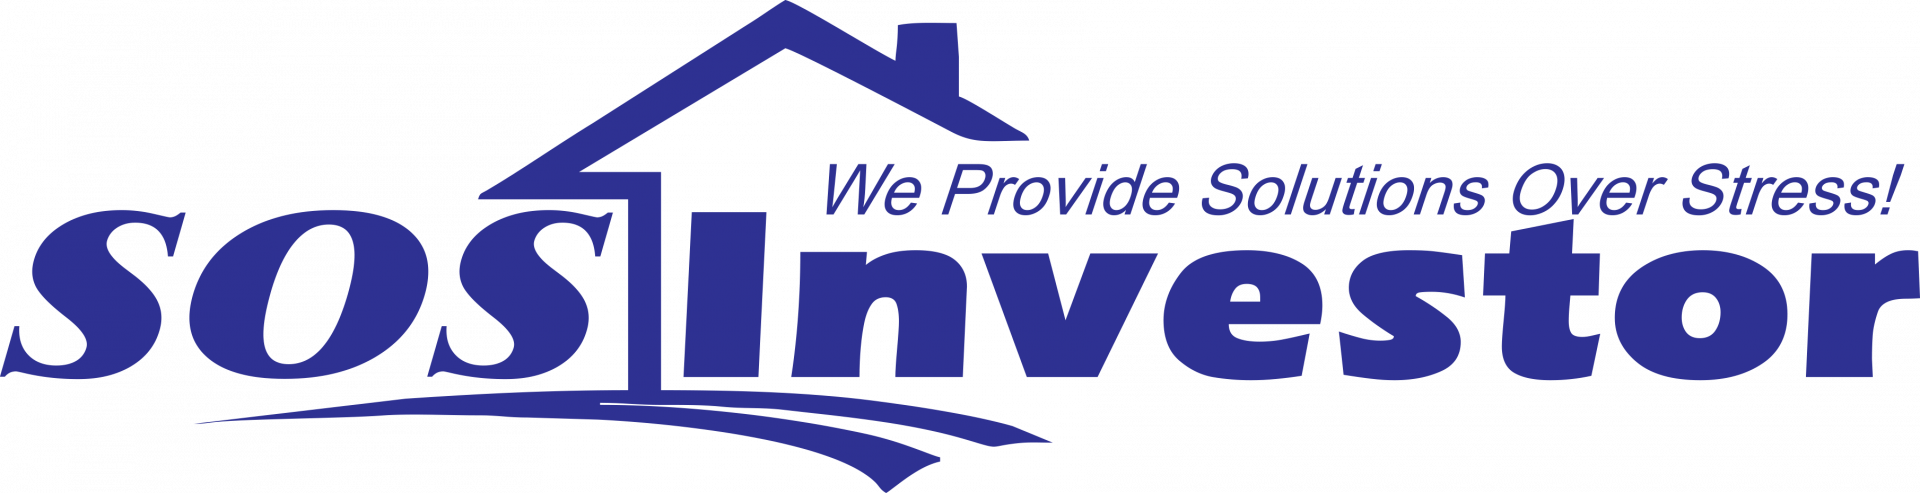 SOS INVESTOR | PREMIER CASH HOME BUYER OF THE CAROLINAS logo